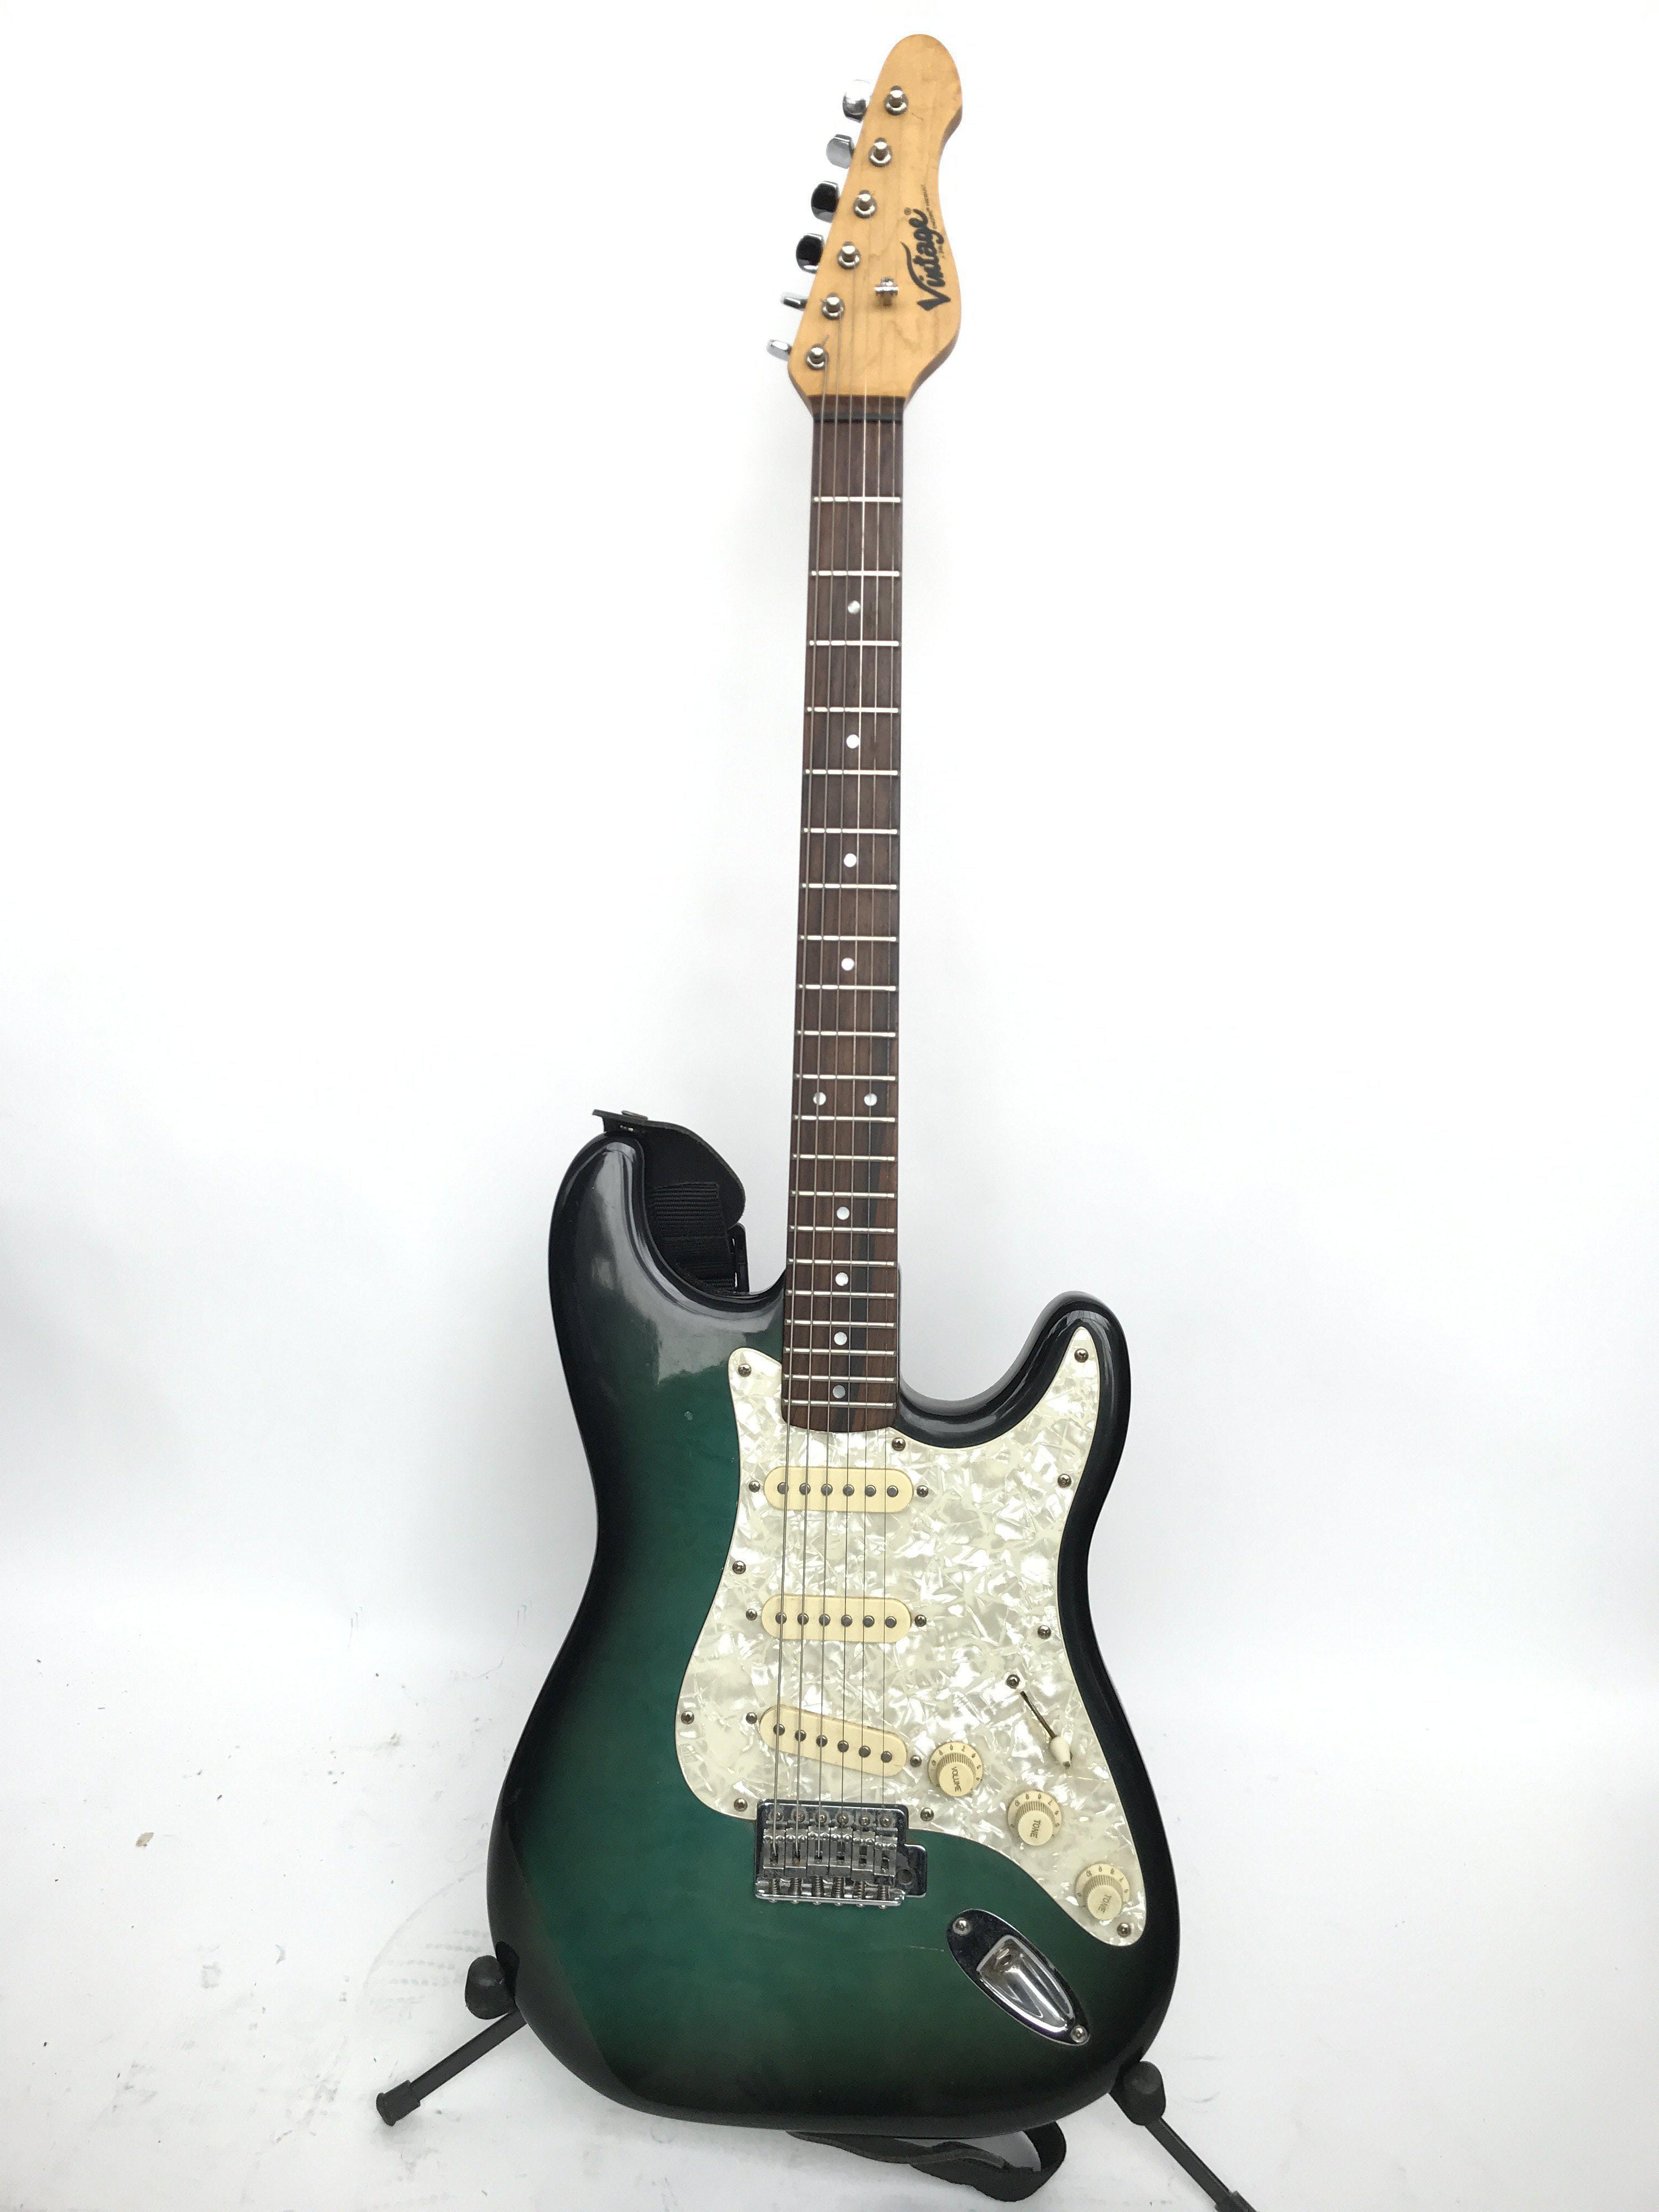 A Vintage Stratocaster style electric guitar with